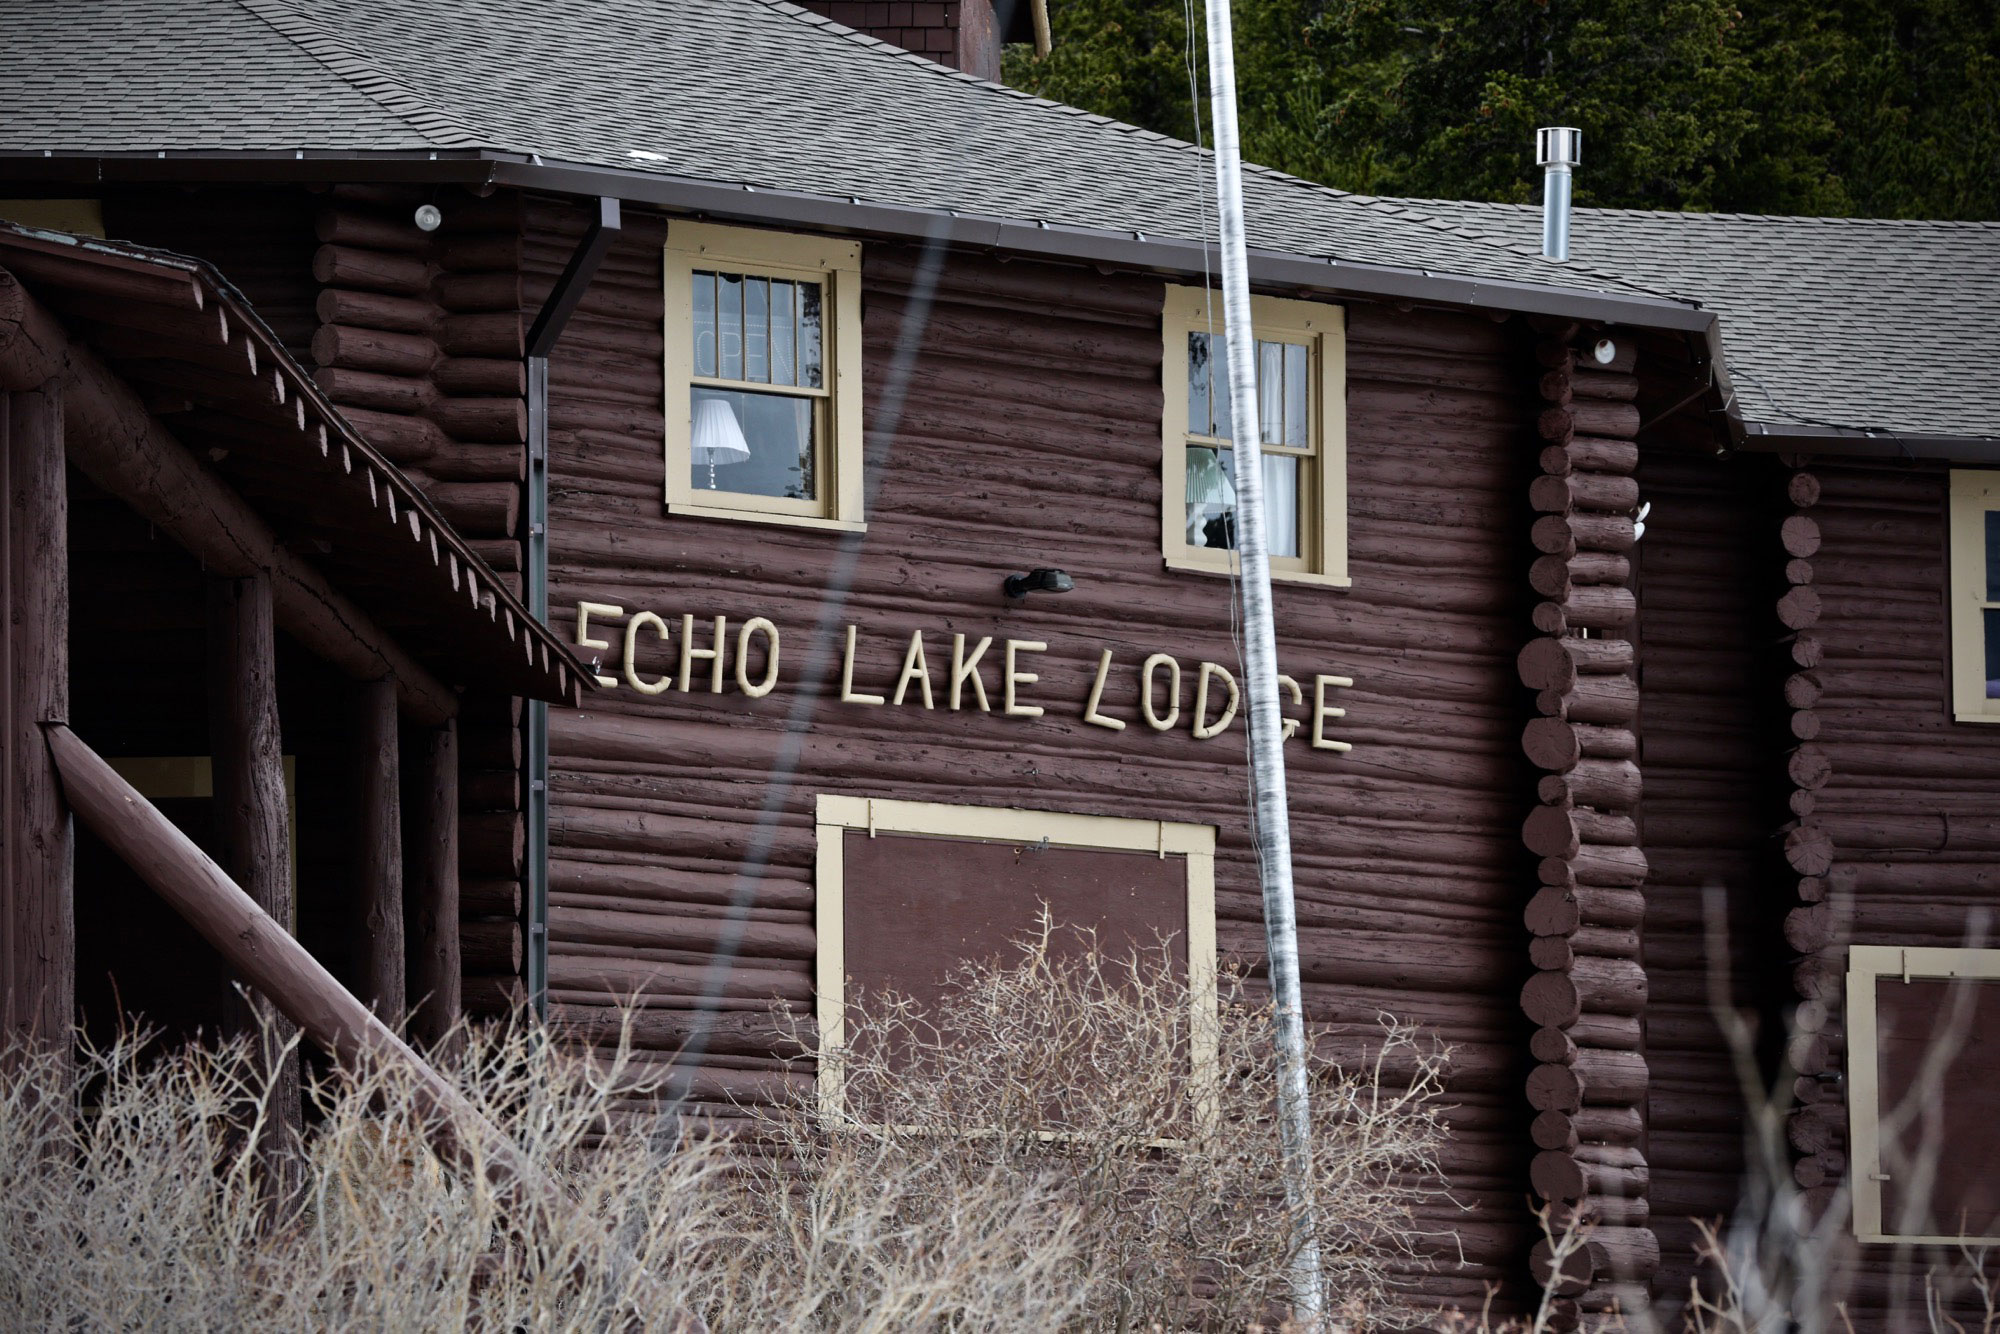 Photo: Sol Pais Manhunt 4 | Echo Lake Lodge - HVD